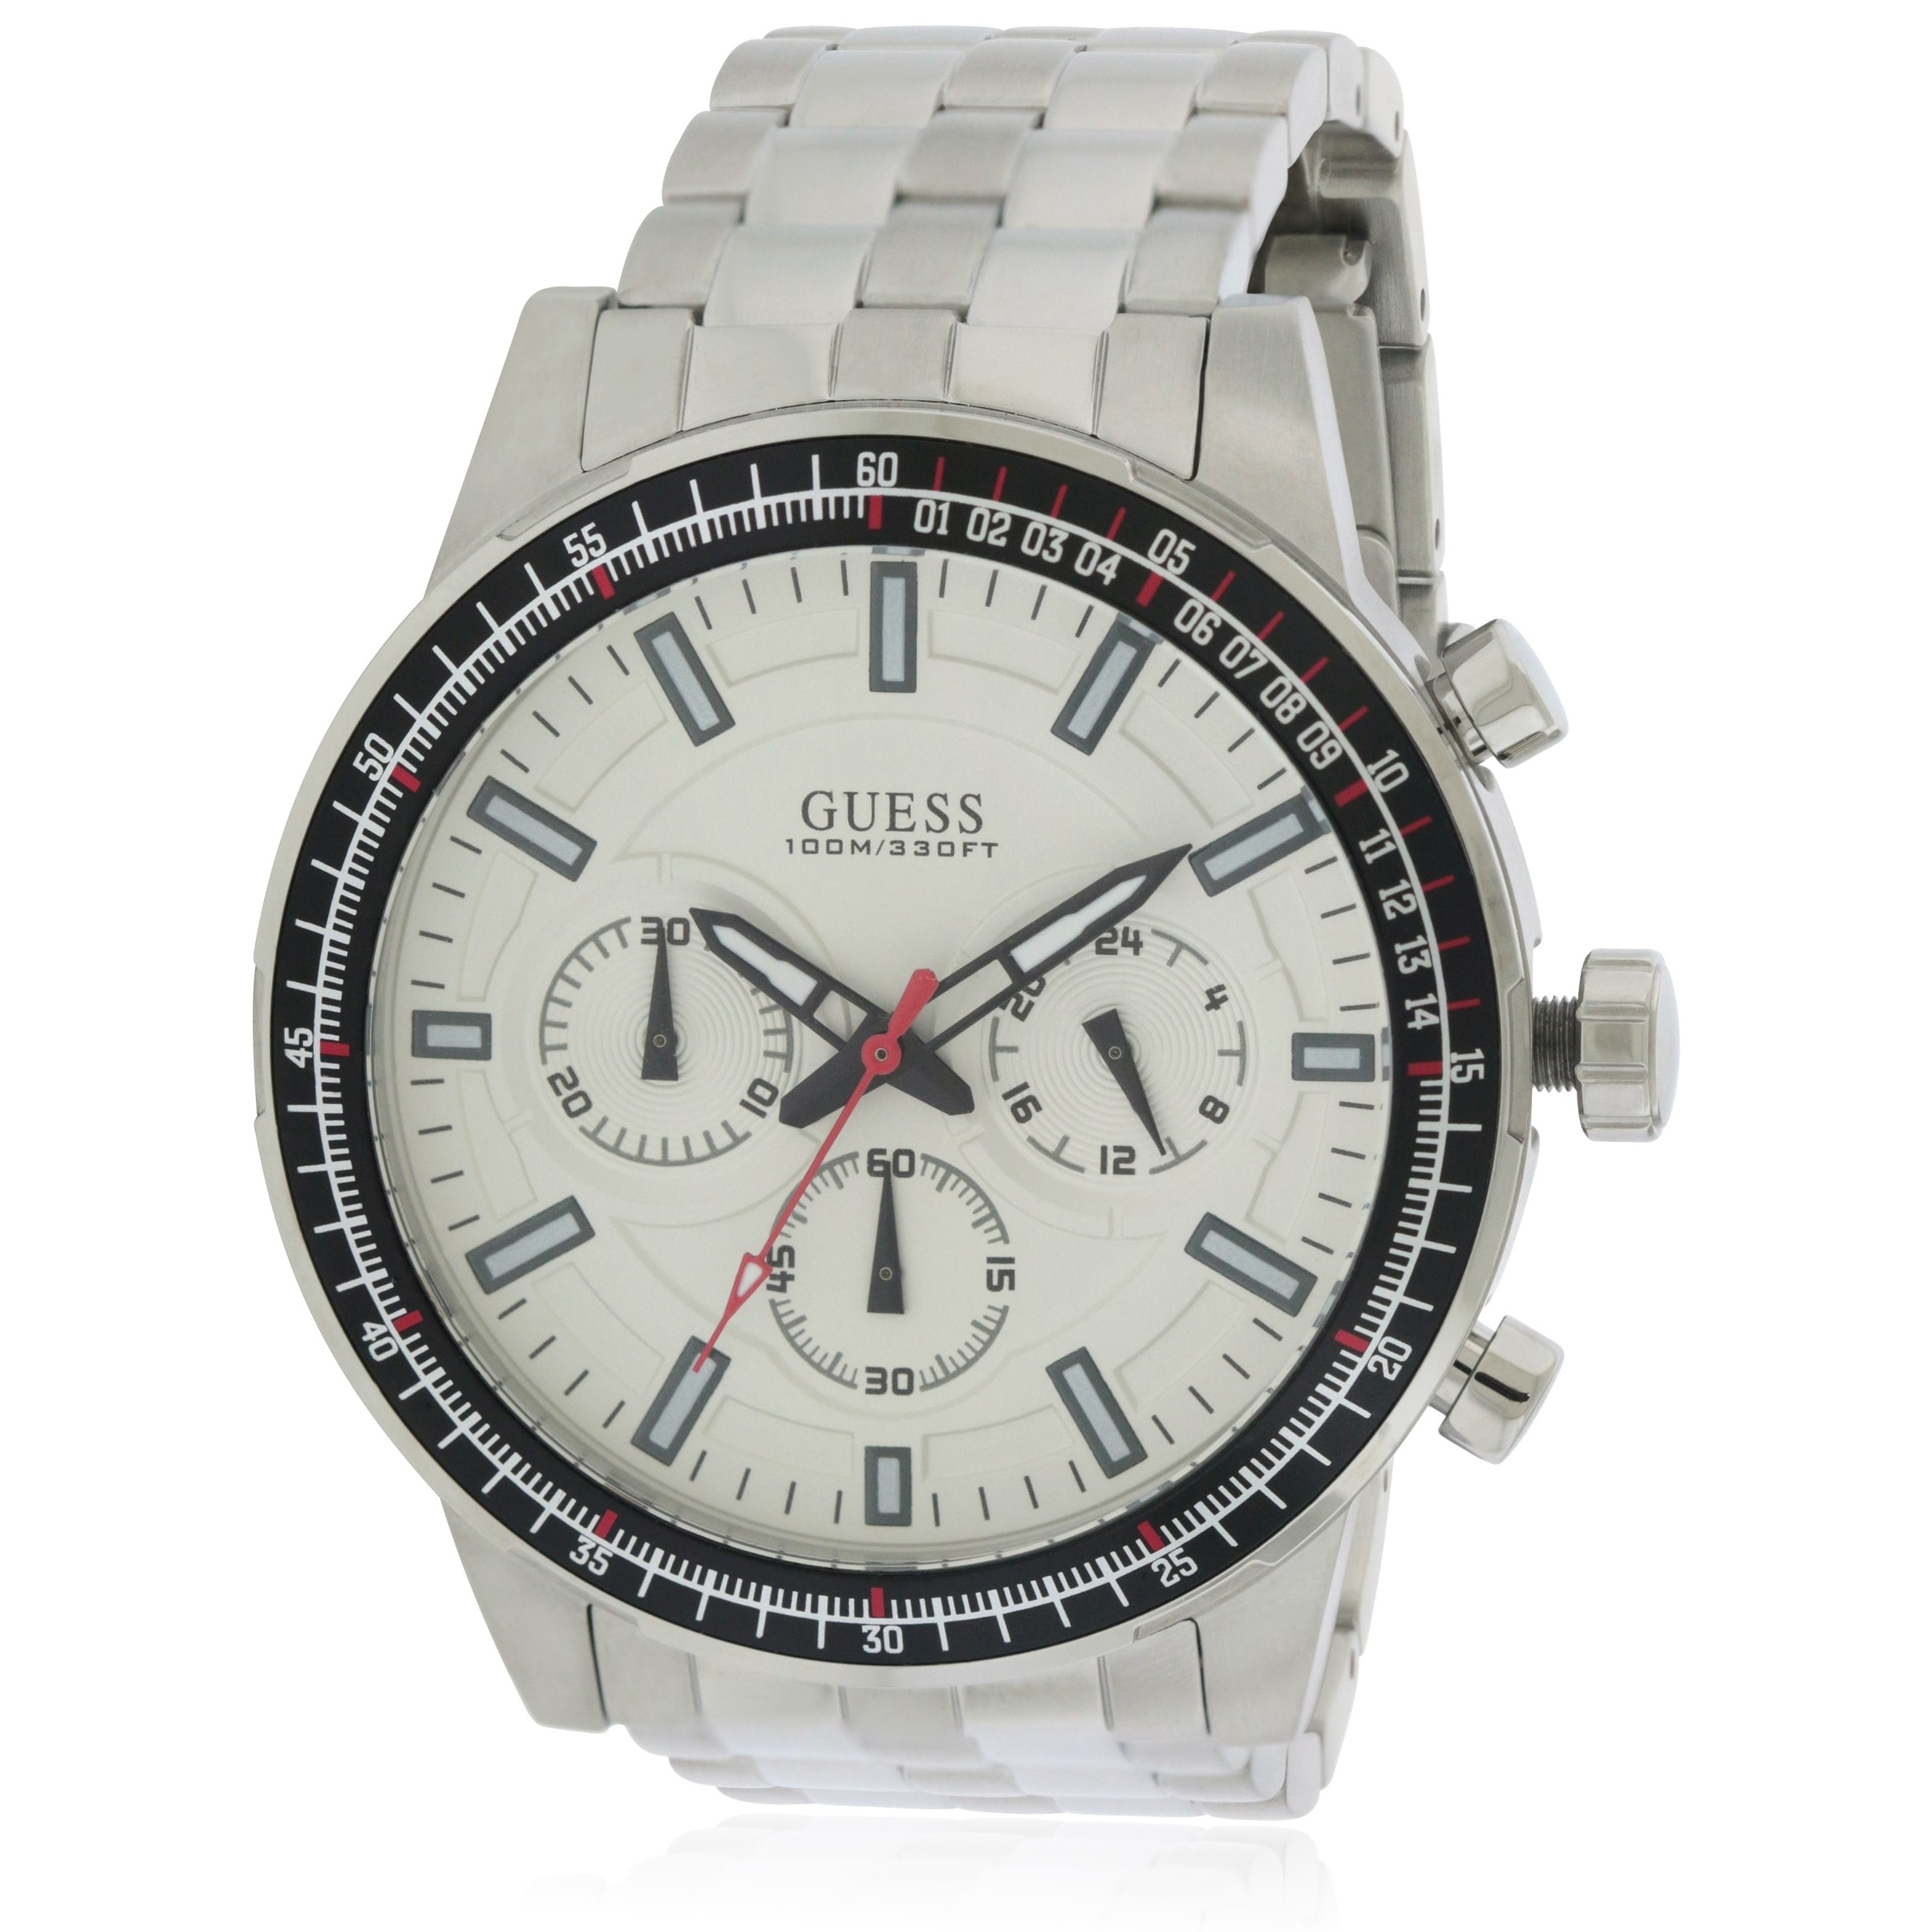 Guess Stainless Steel Chronograph Mens Watch U0801G1, Whi...